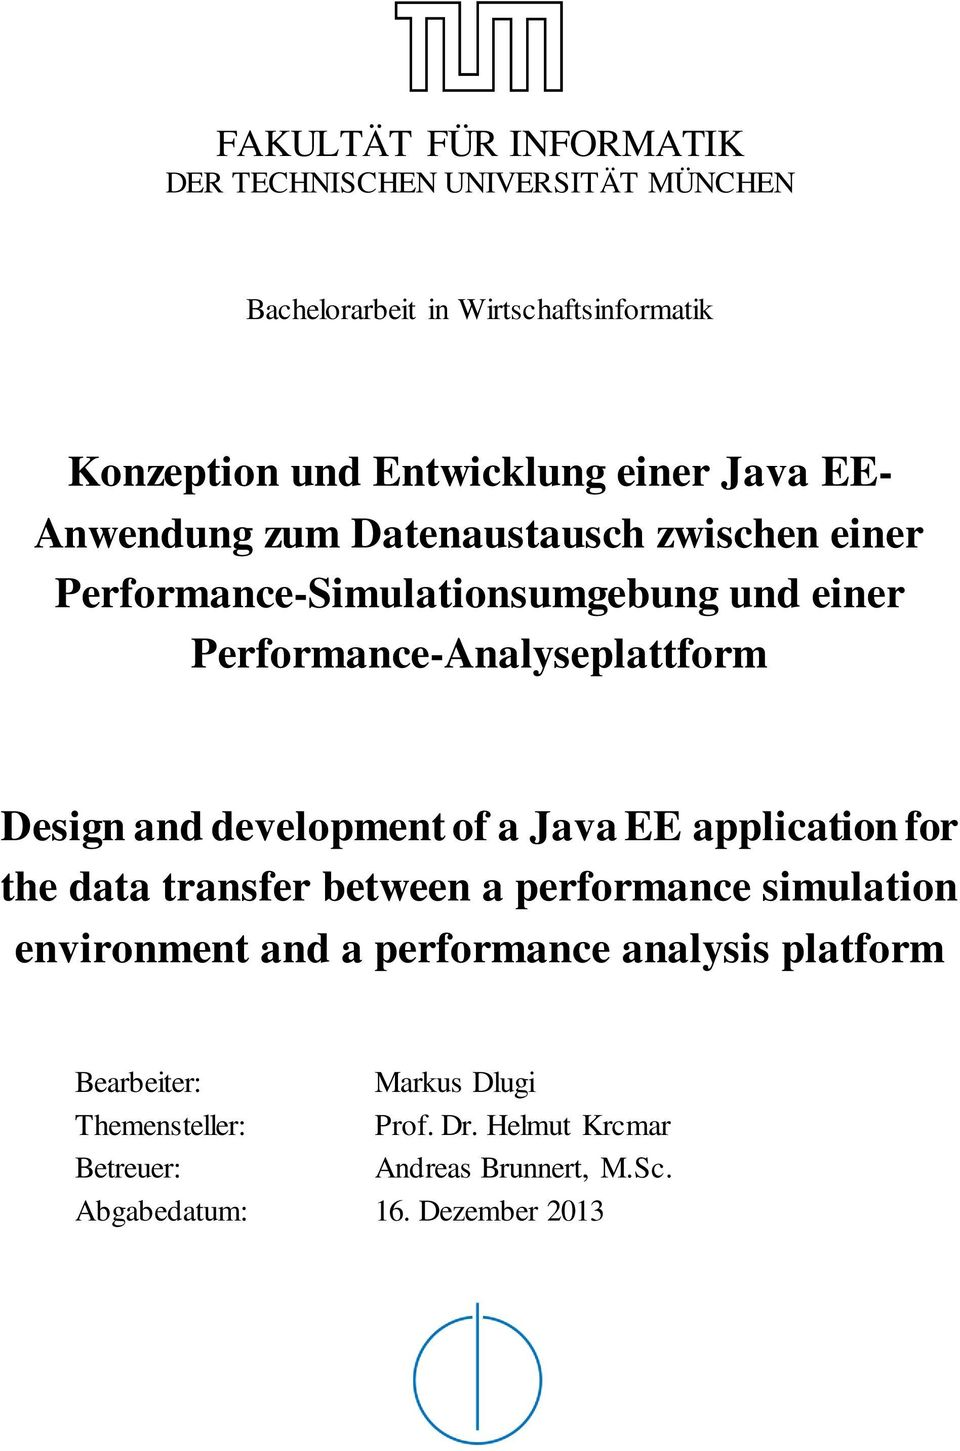 and development of a Java EE application for the data transfer between a performance simulation environment and a performance